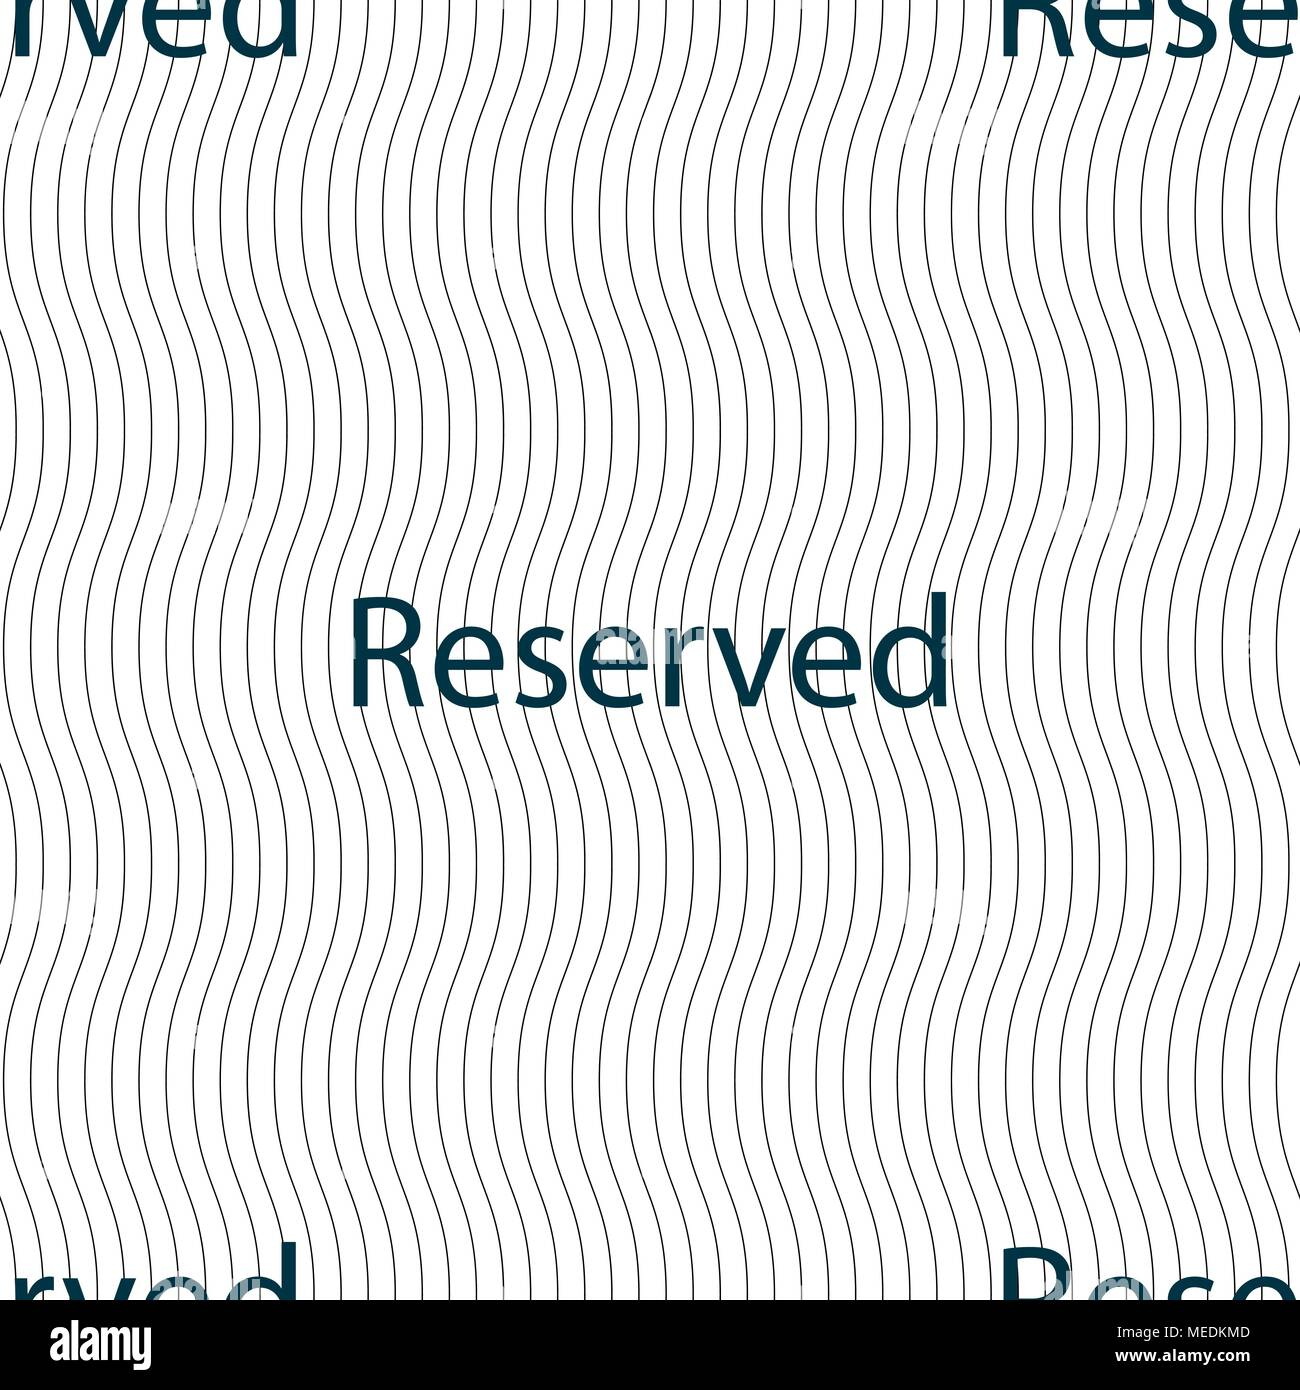 Reserved sign icon. Seamless pattern with geometric texture. Vector illustration - Stock Image